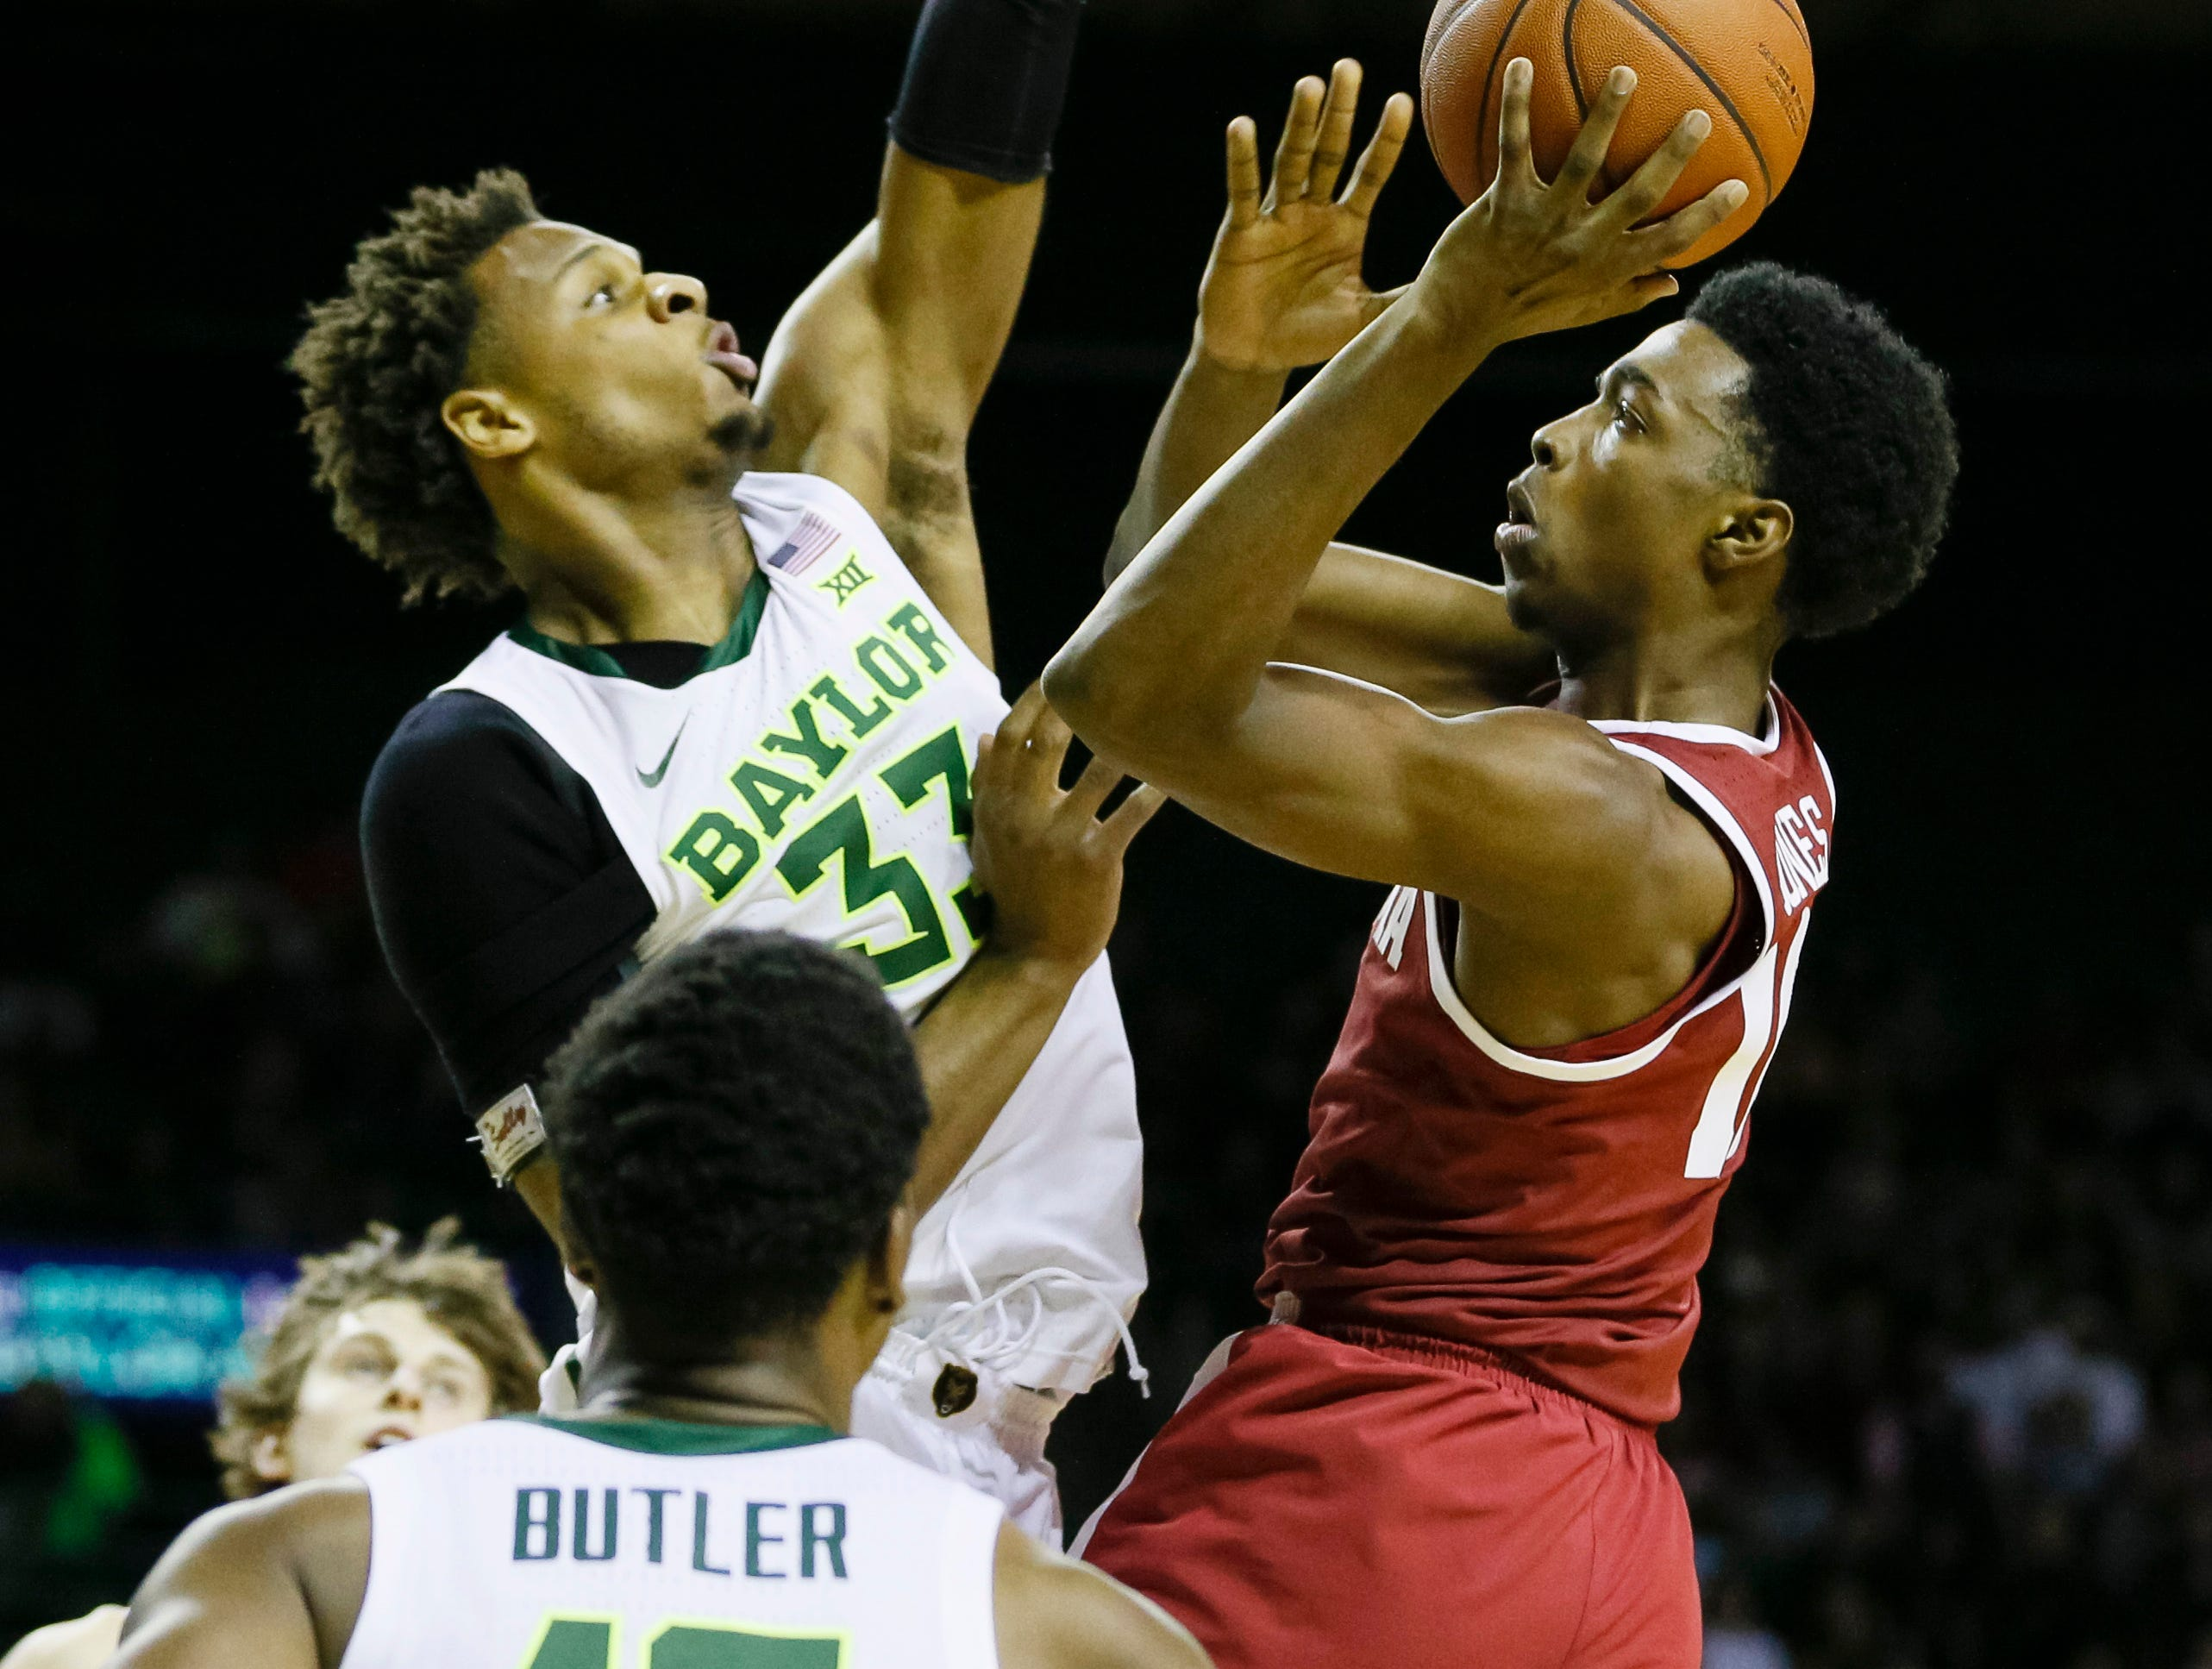 Jan 26, 2019; Waco, TX, USA; Alabama Crimson Tide guard Herbert Jones (10) shoot the ball as Baylor Bears forward Freddie Gillespie (33) defends during the first half at Ferrell Center. Mandatory Credit: Ray Carlin-USA TODAY Sports